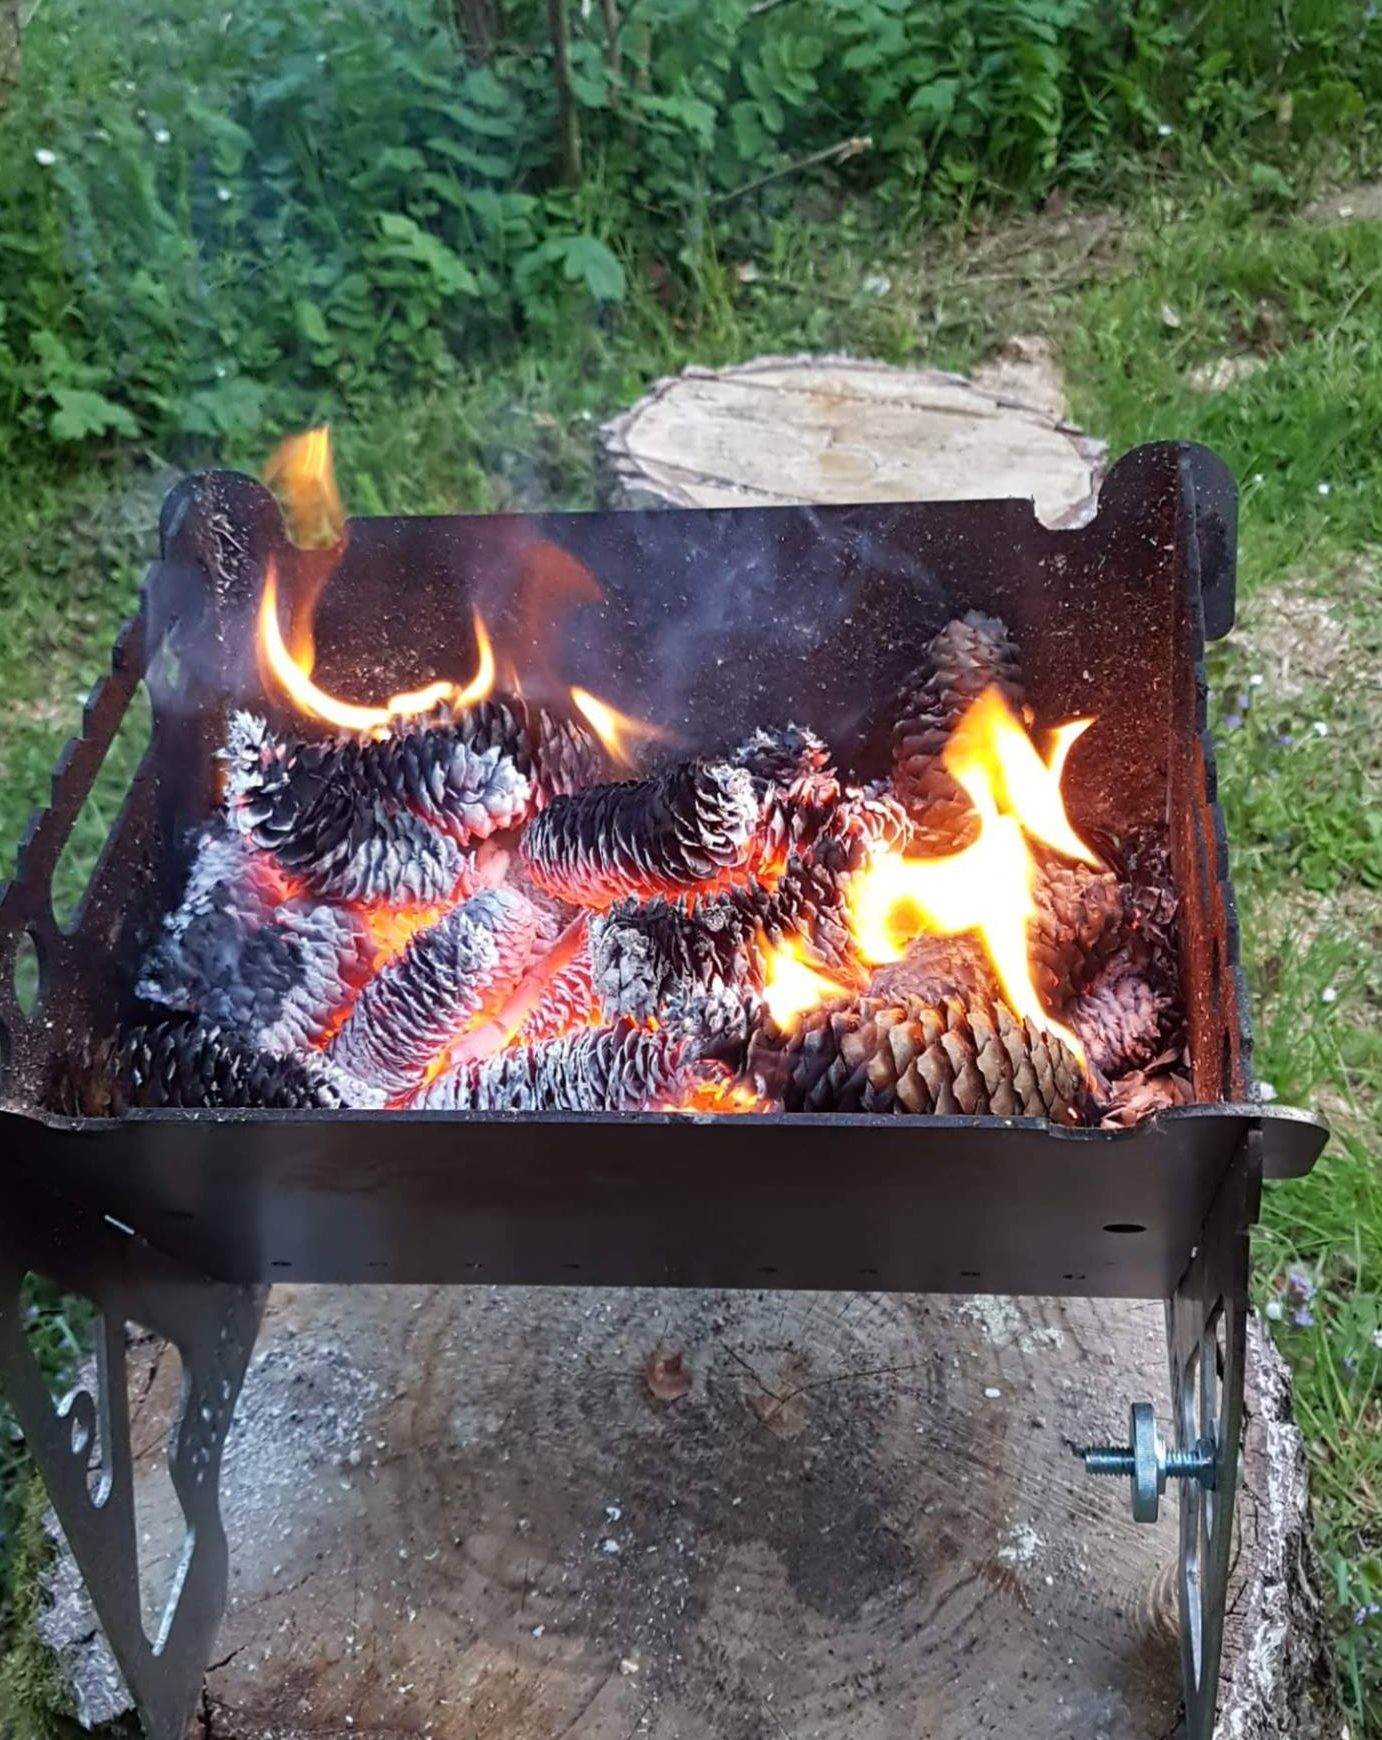 Grill N Fire Barbecue 4x4overlander